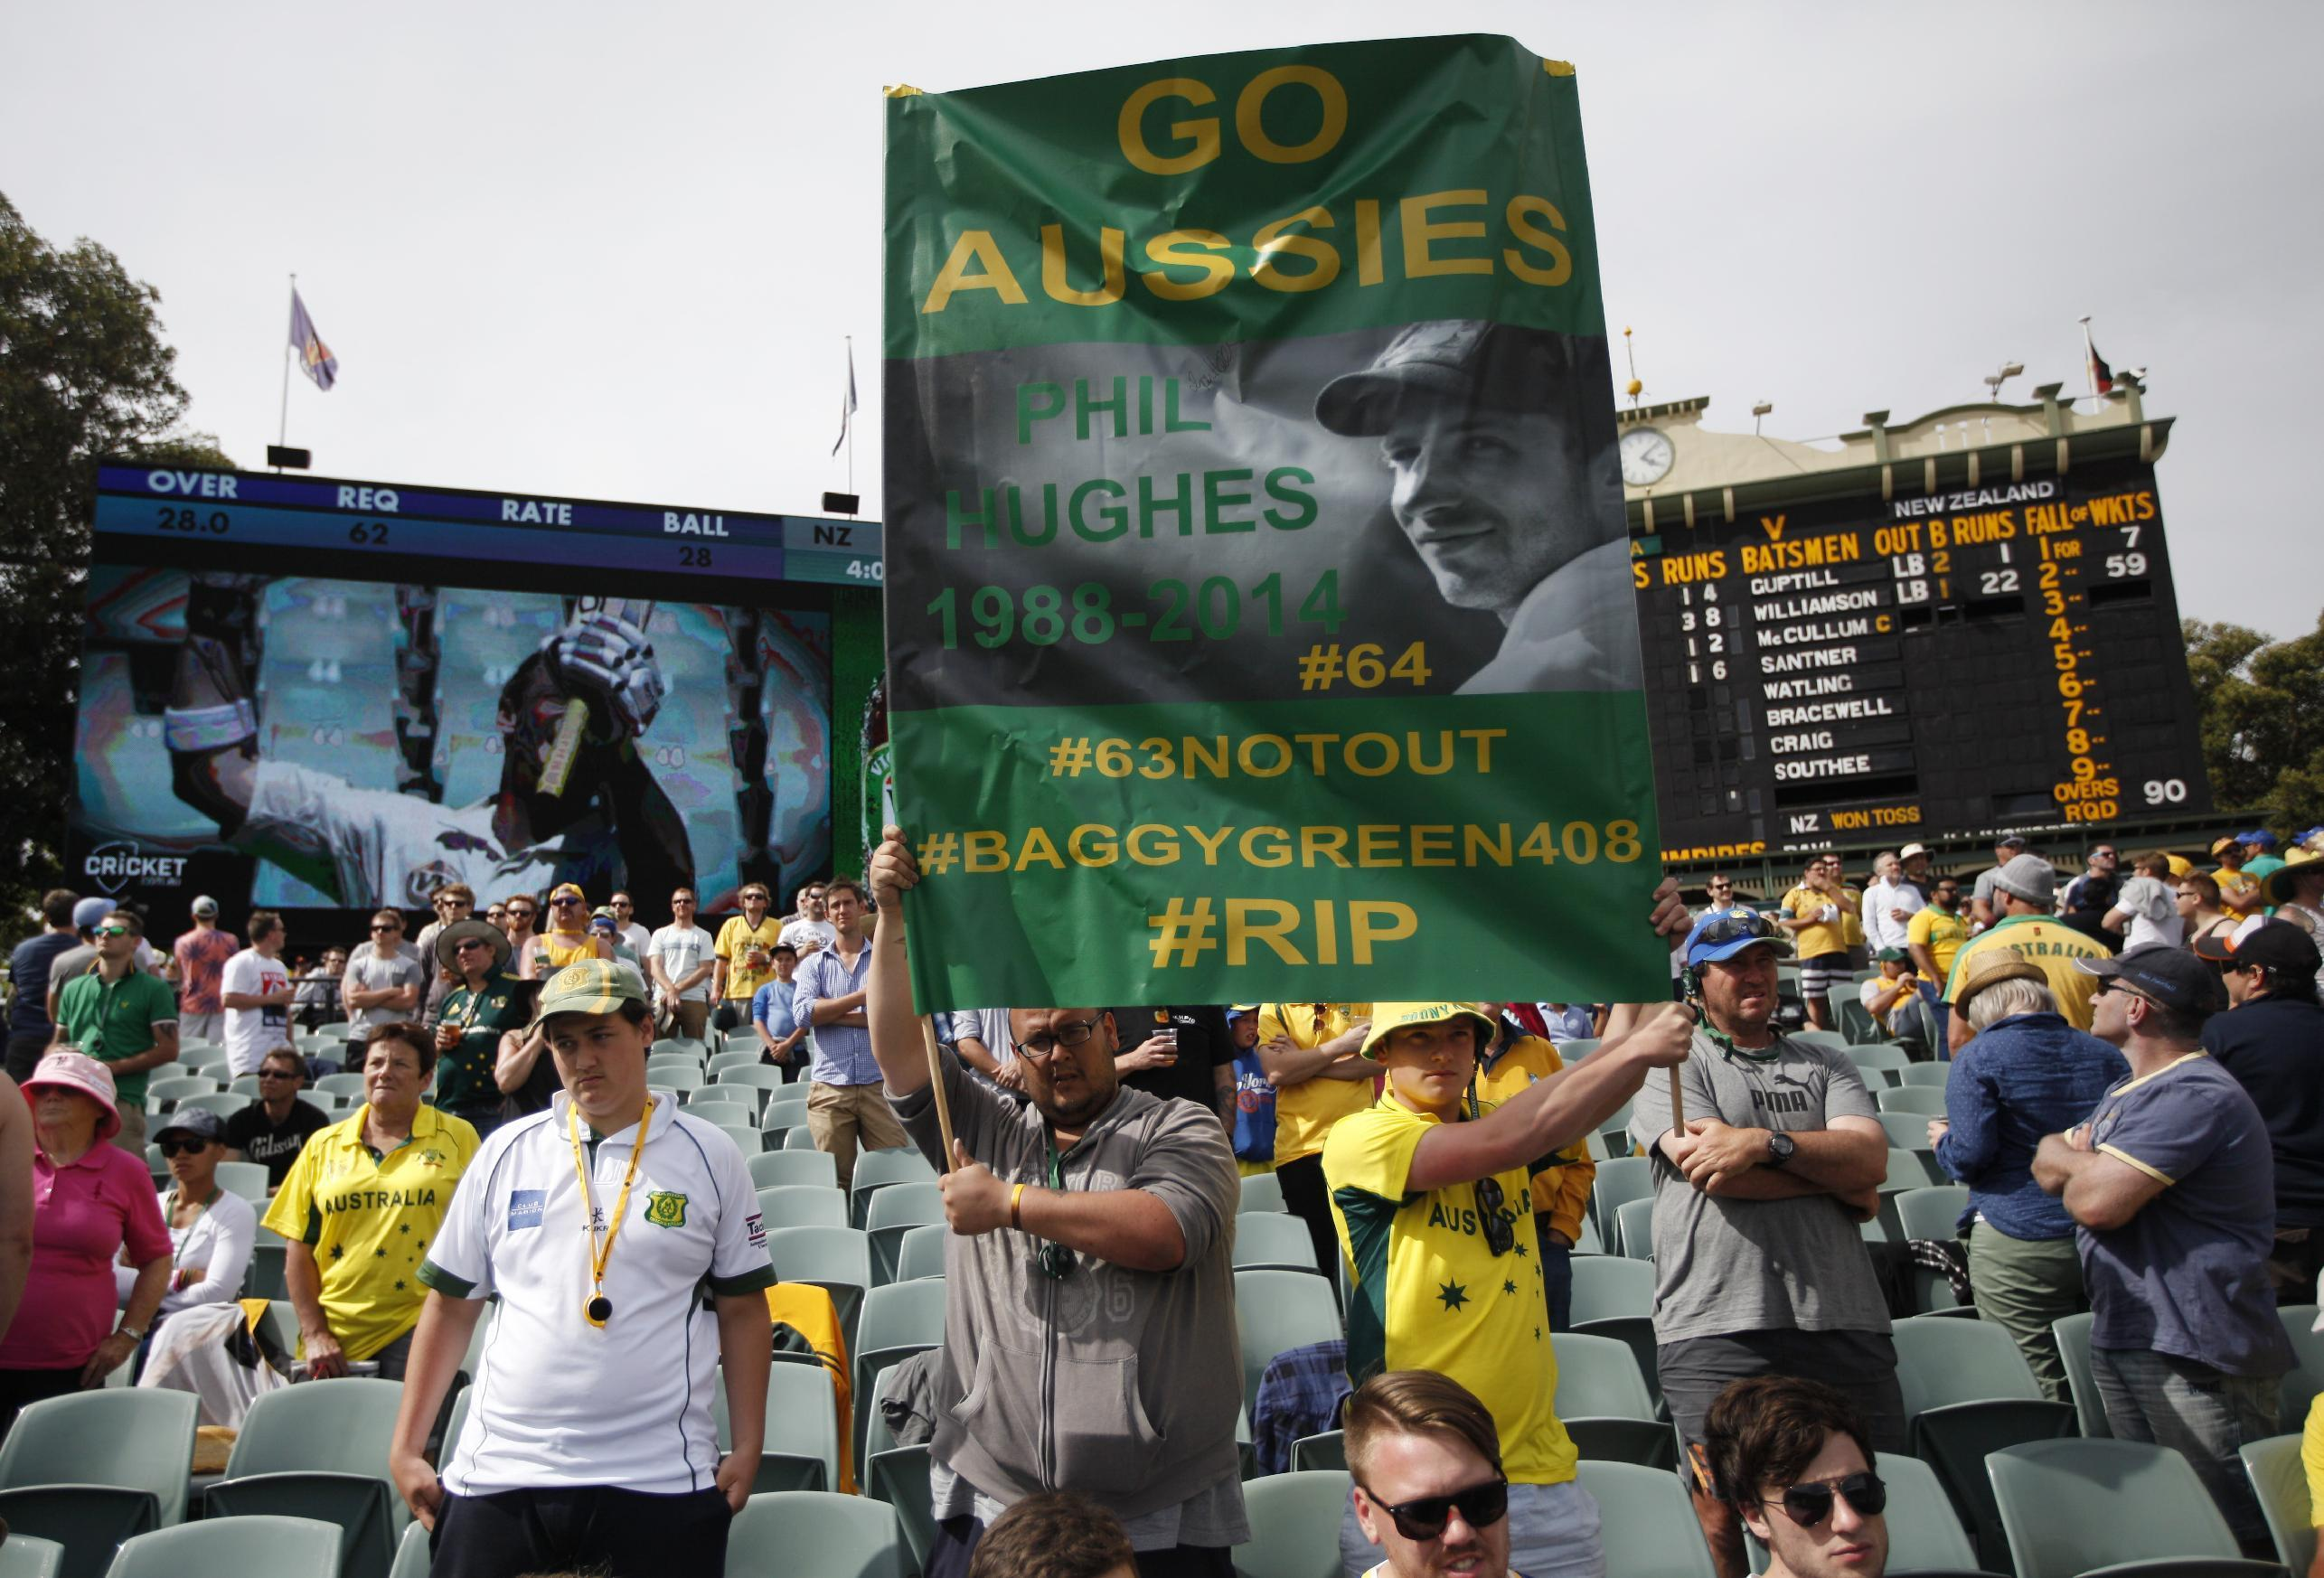 Tribute in Adelaide marks 1st anniversary of Hughes' death